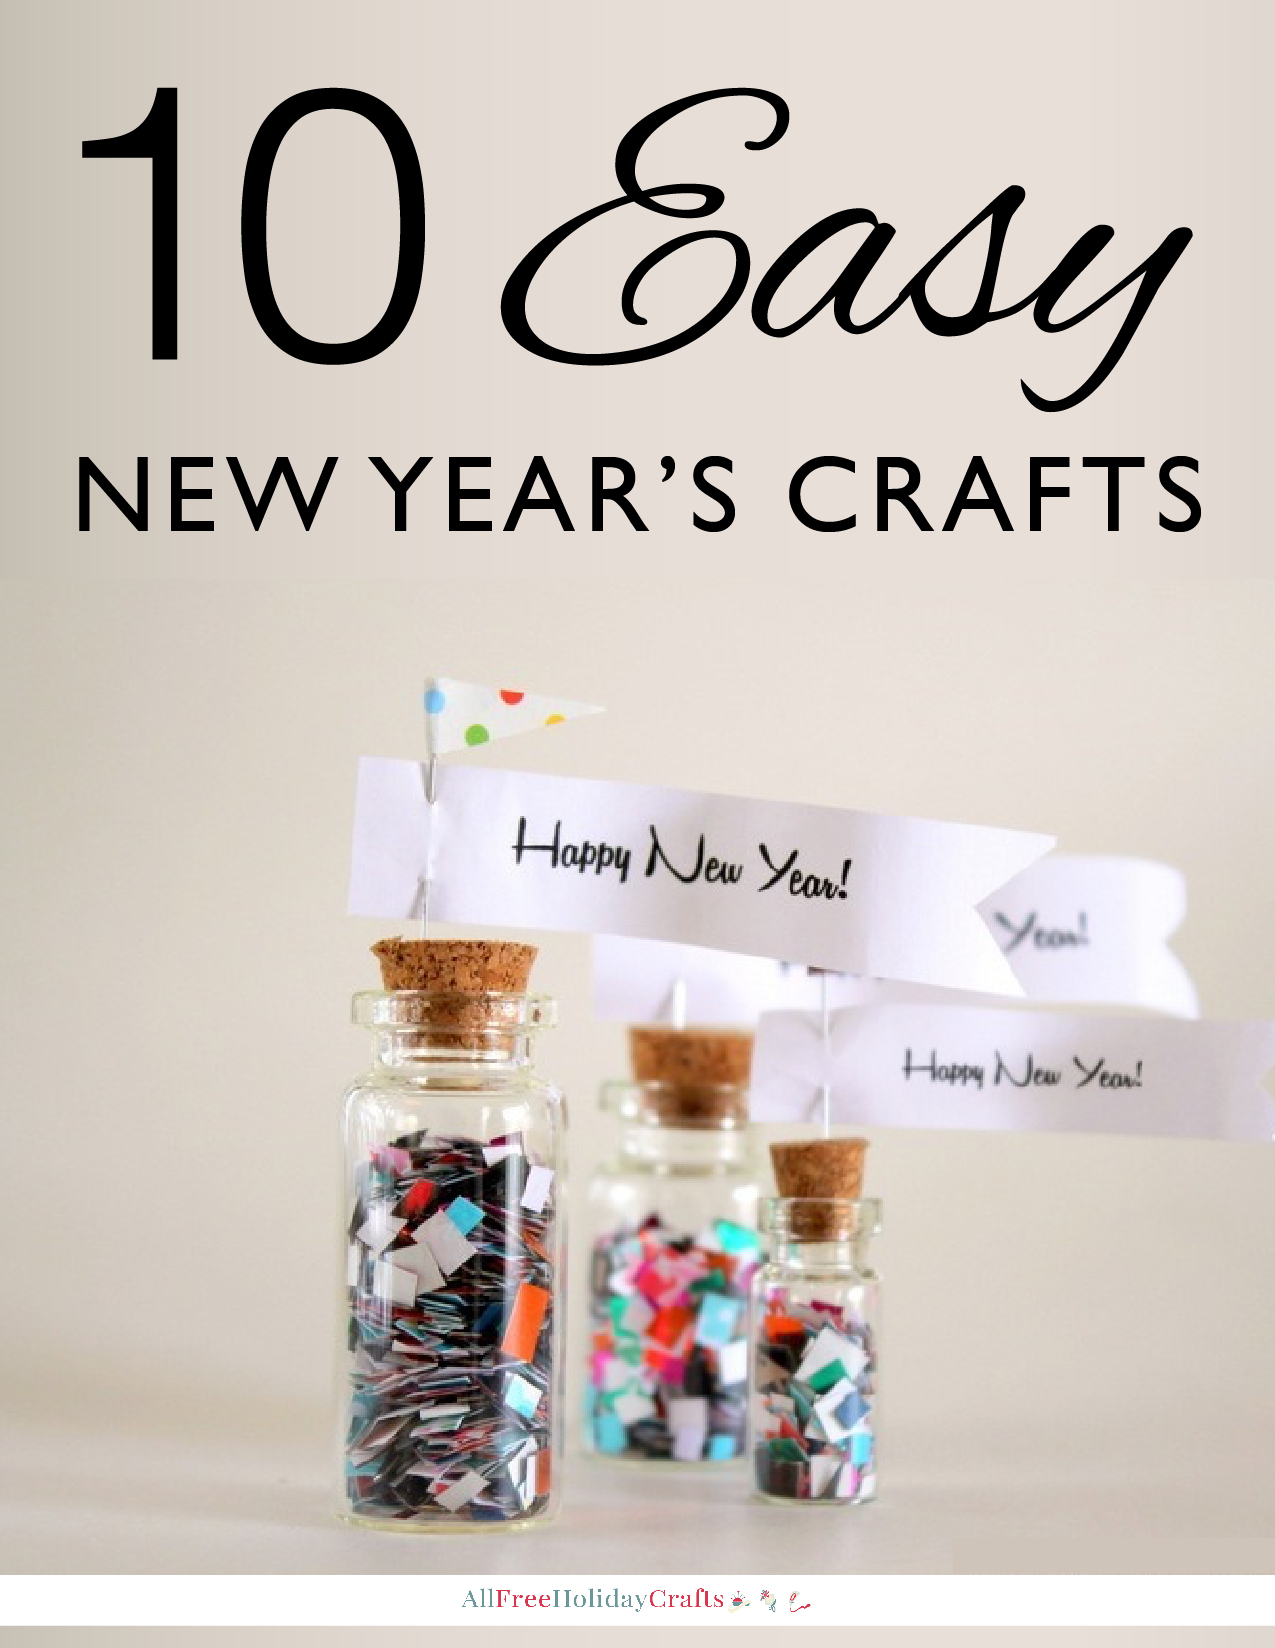 10 Easy New Year's Crafts